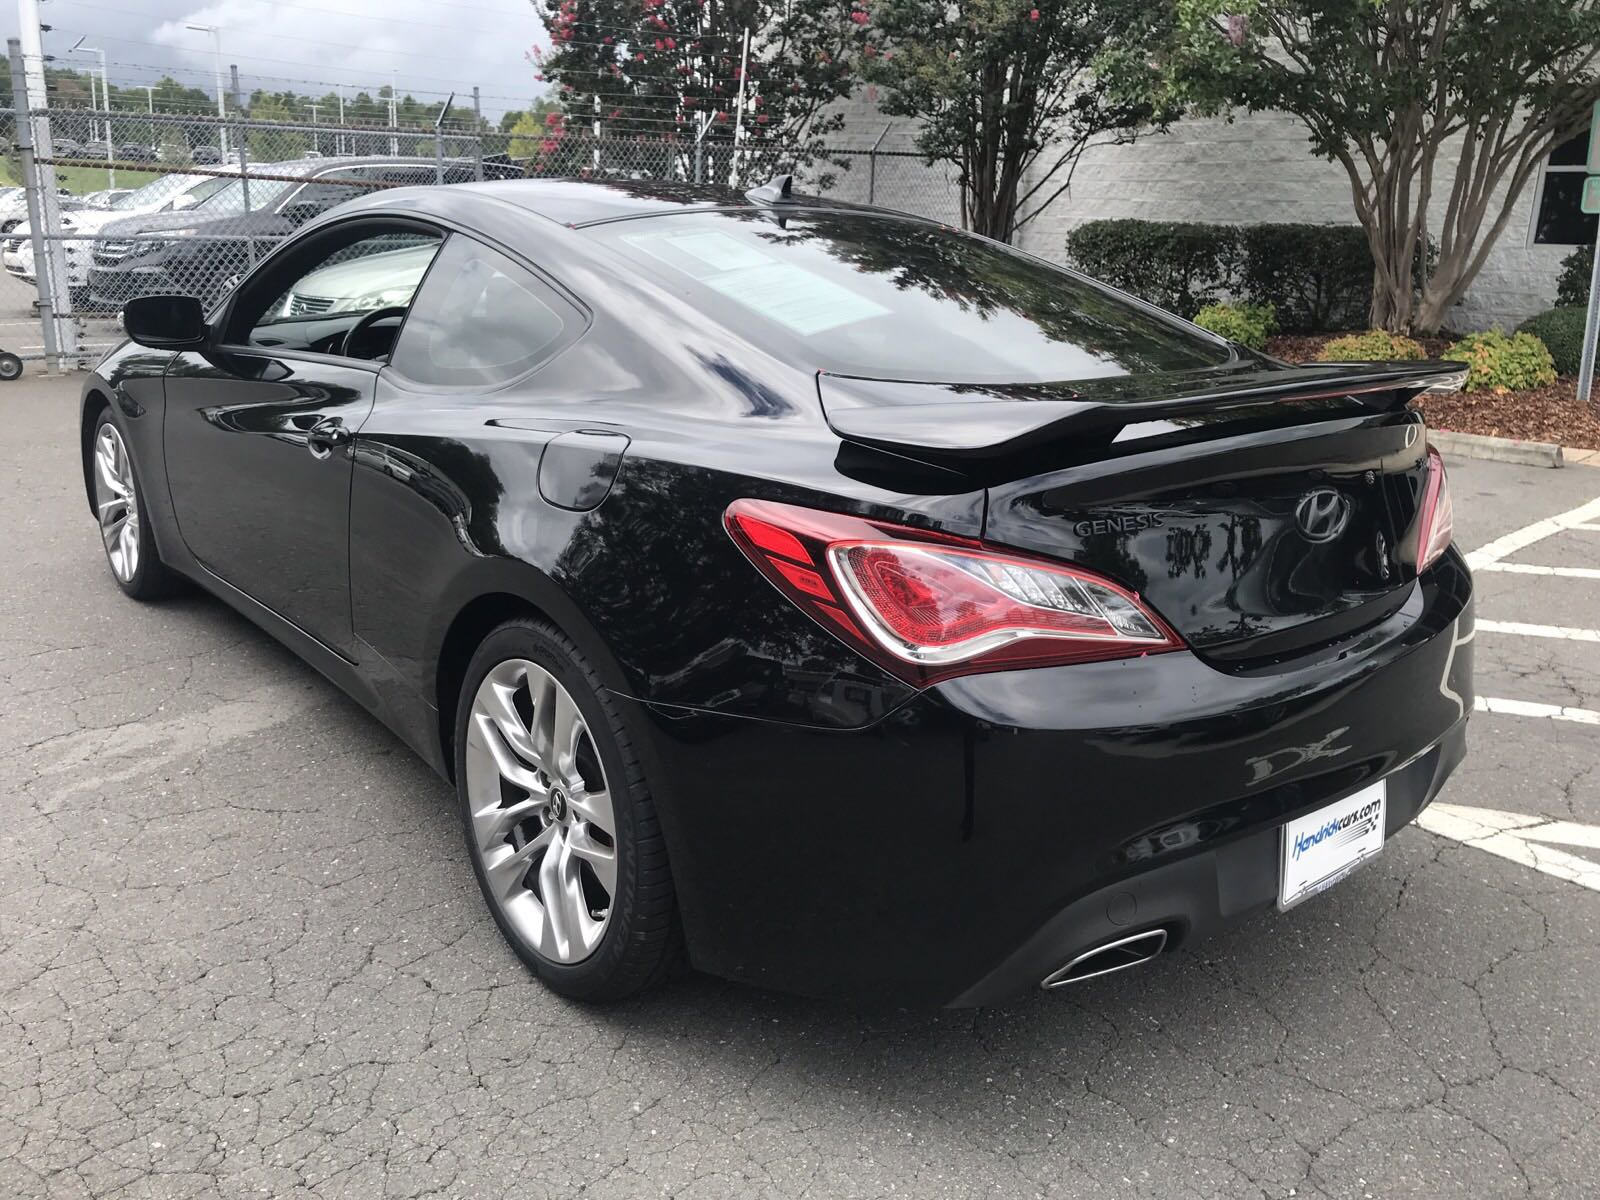 Pre-Owned 2014 Hyundai Genesis Coupe 3.8 R-Spec